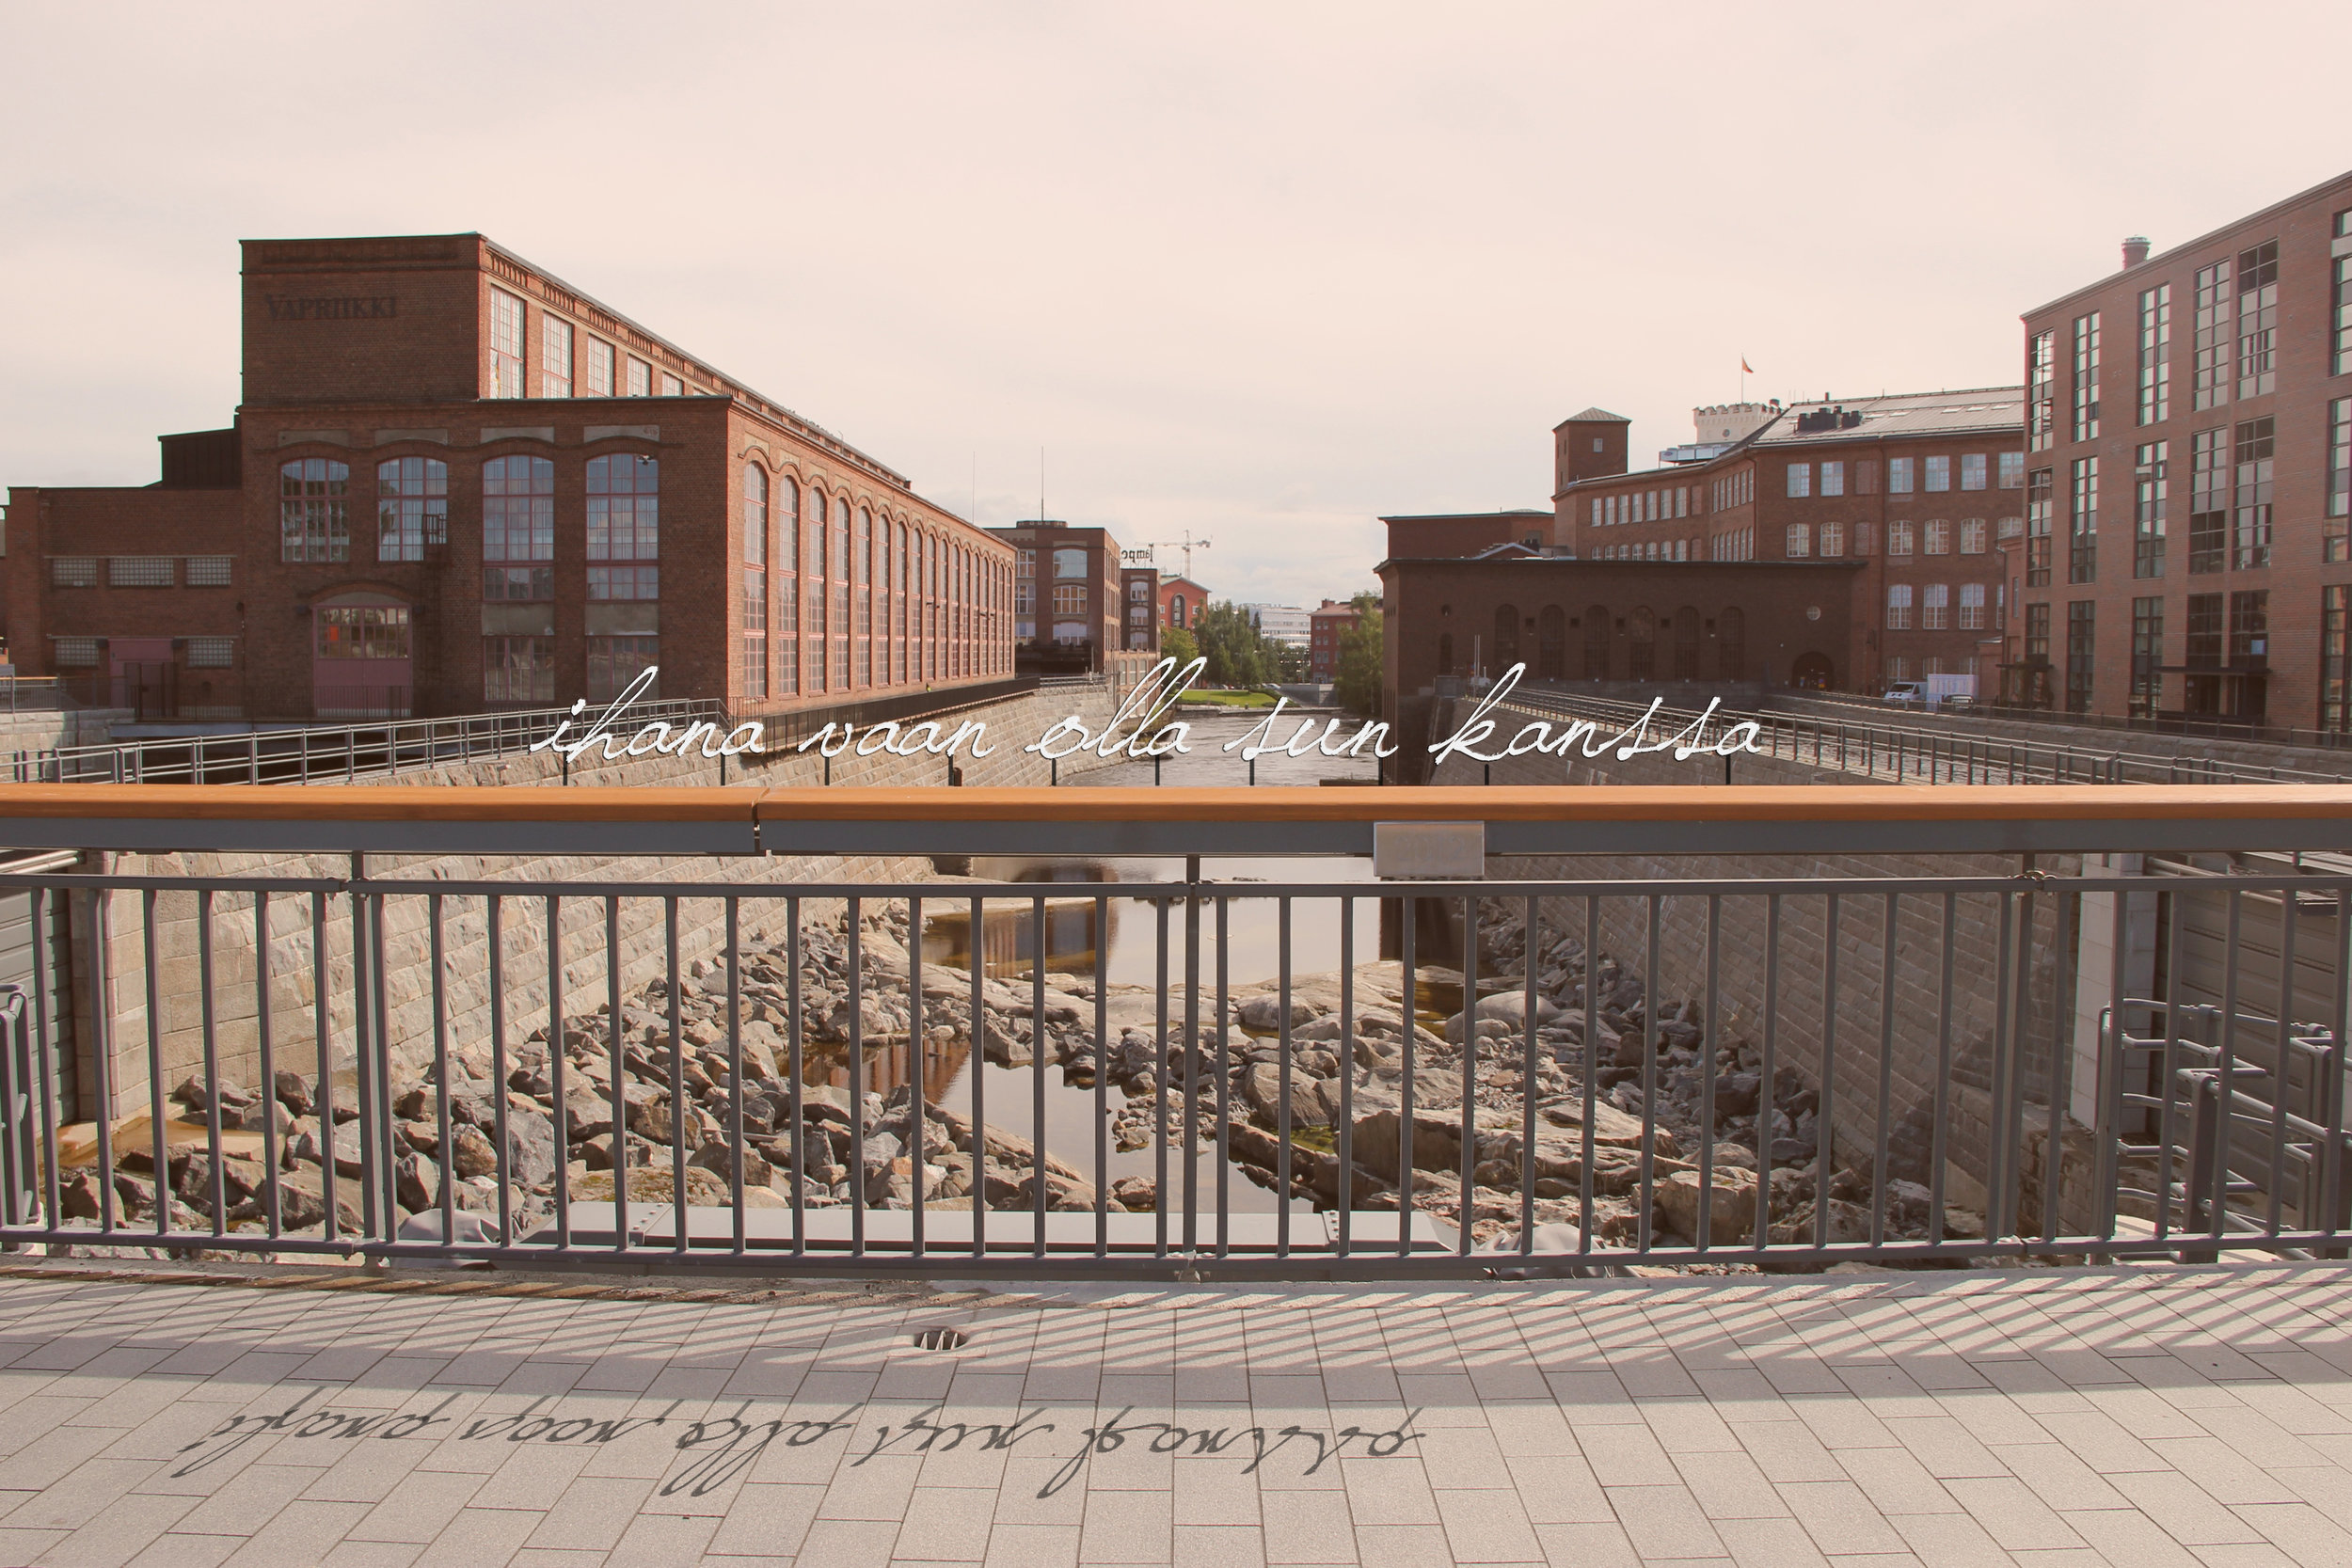 """ I love just being with you""   My photo illustration of the work as part of Patosilta, over Tammerkoski rapids."